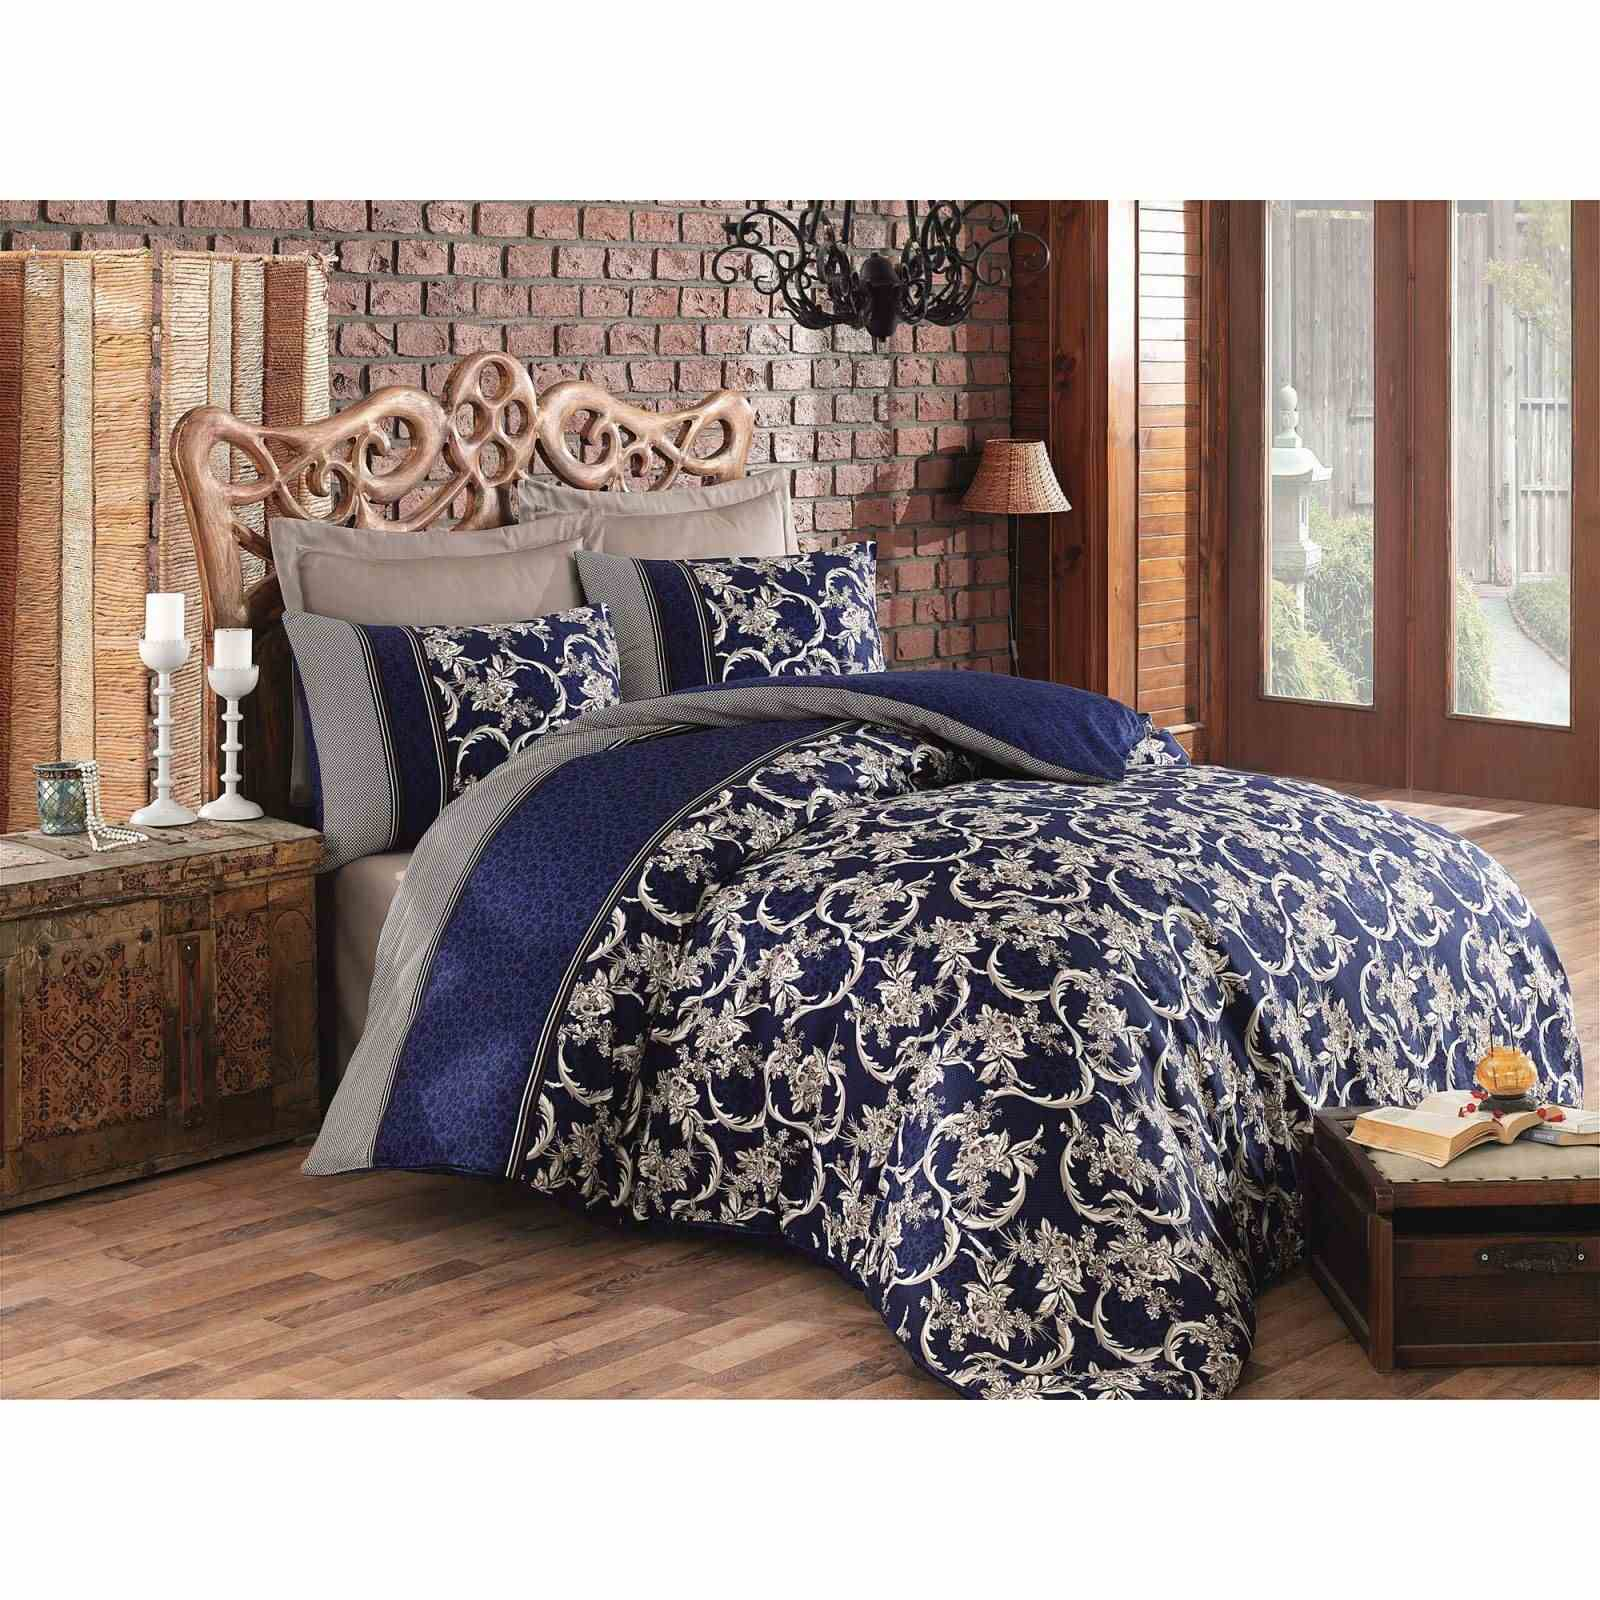 cotton box parure de lit en satin de coton bleu marine. Black Bedroom Furniture Sets. Home Design Ideas